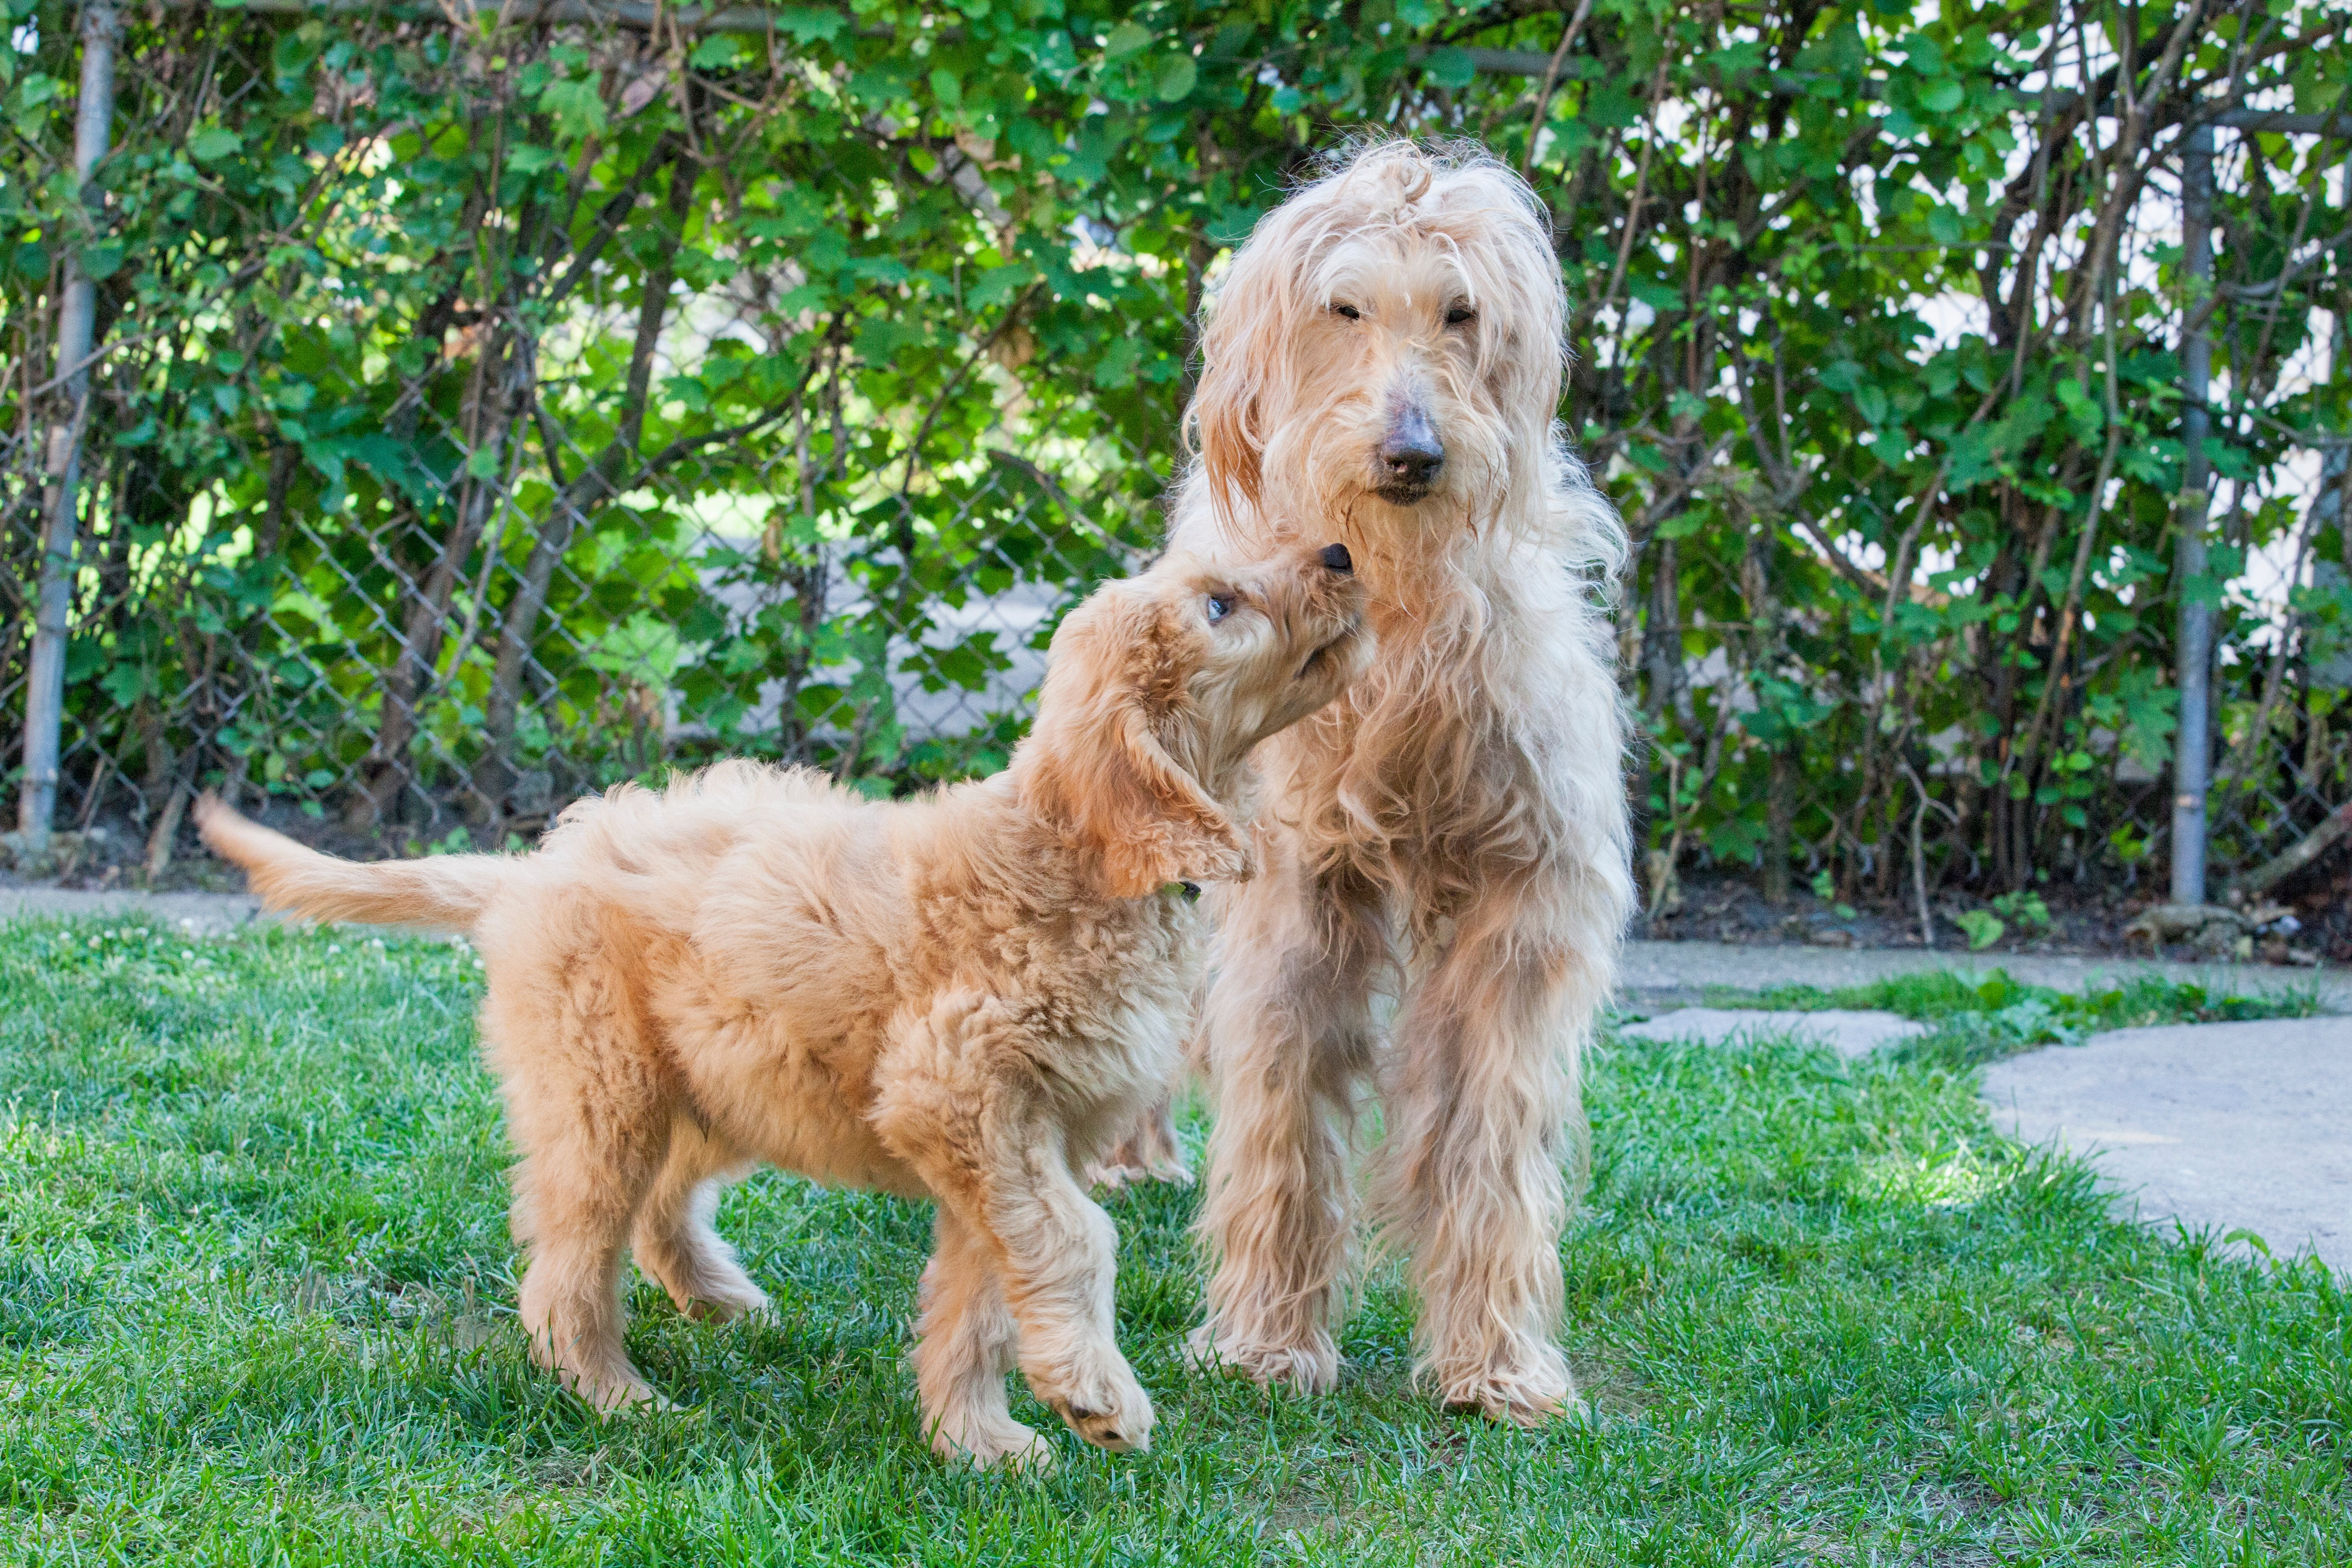 Goldendoodle Puppies: Pictures And Facts - Dogtime